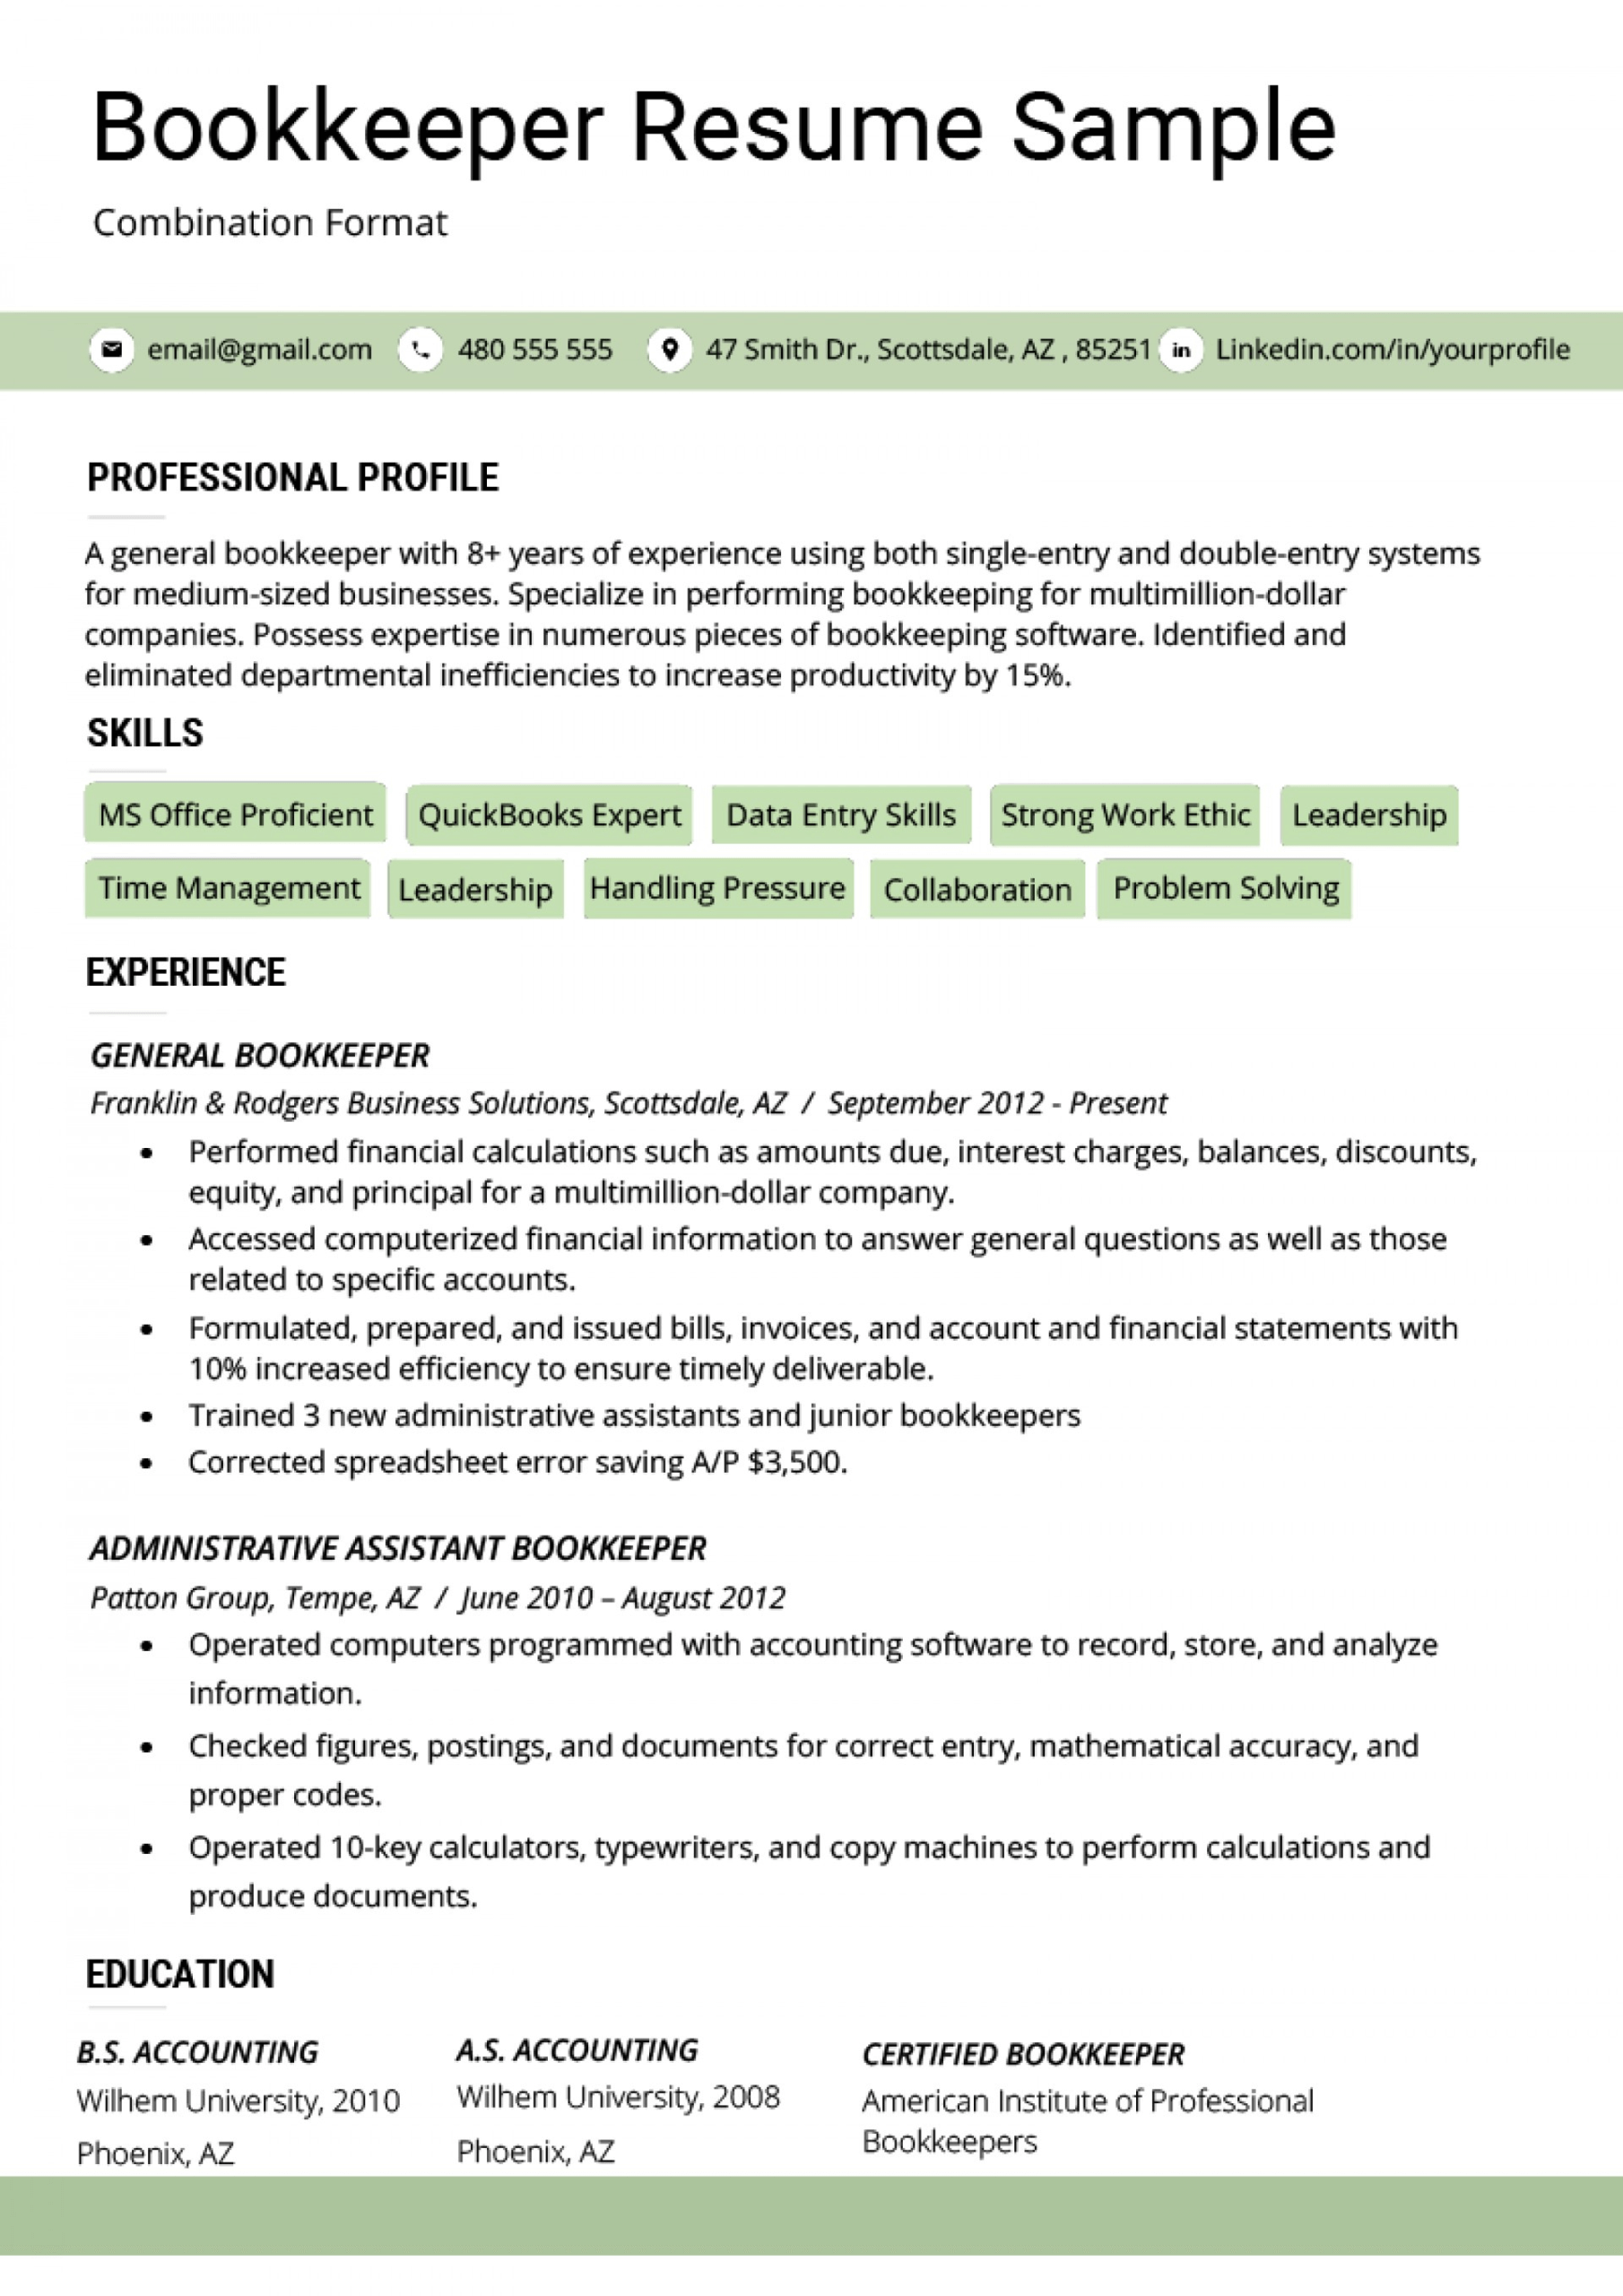 021 Combination Resume Template Word Bination Format In Combination Resume Template Word